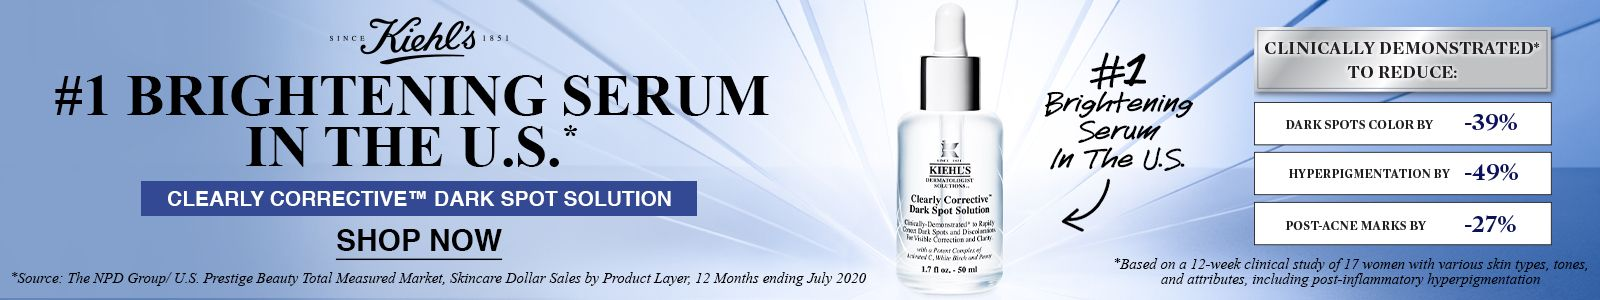 Kiehl's Clearly Corrective TM Dark Spot Solution, Shop Now